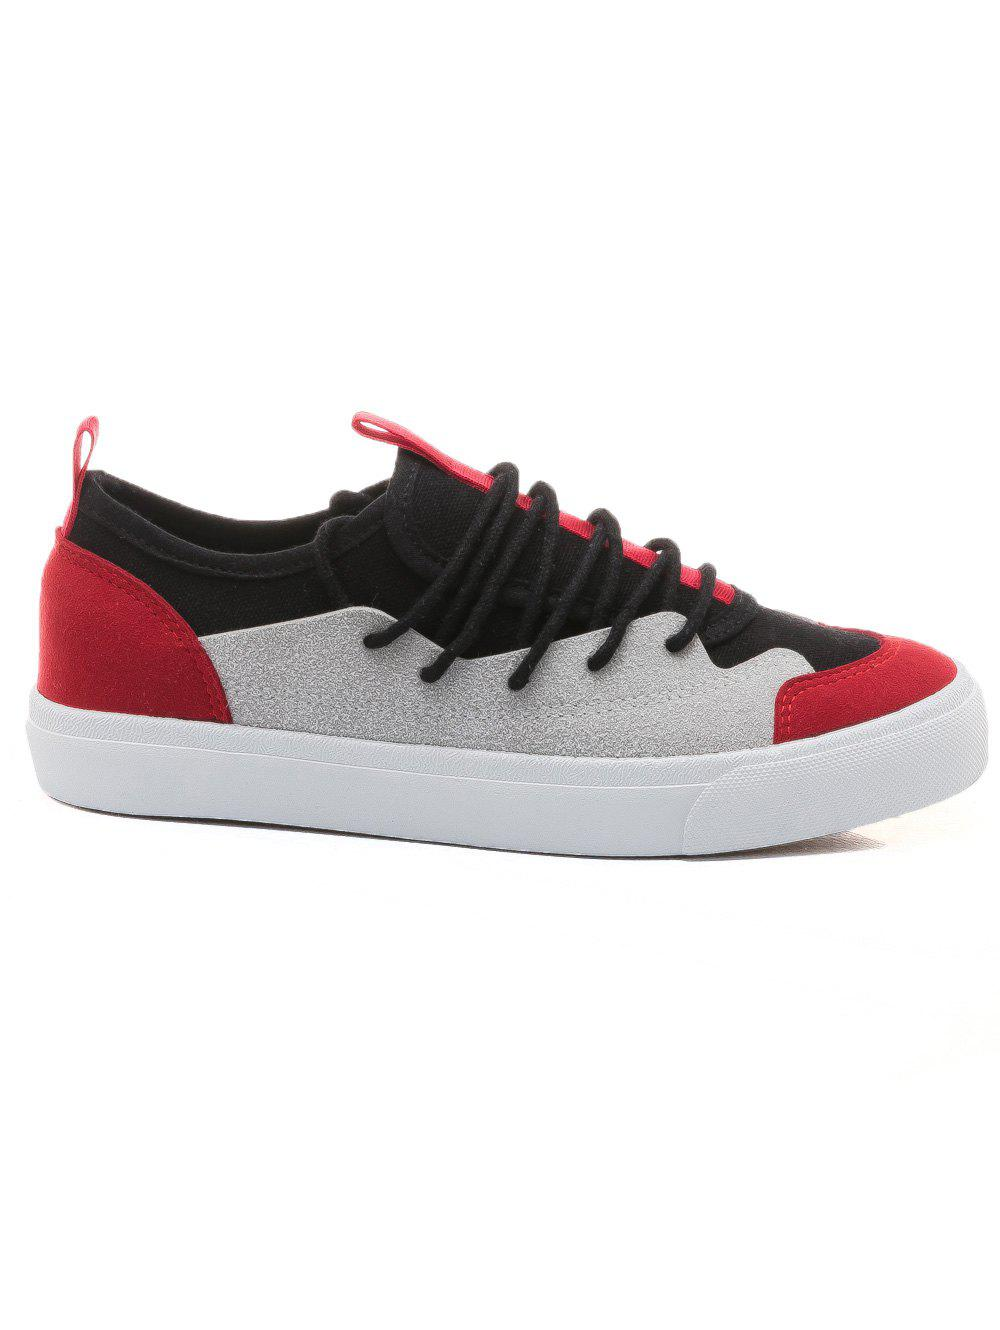 Chaussures de skate à bas talon color block - Rouge 36